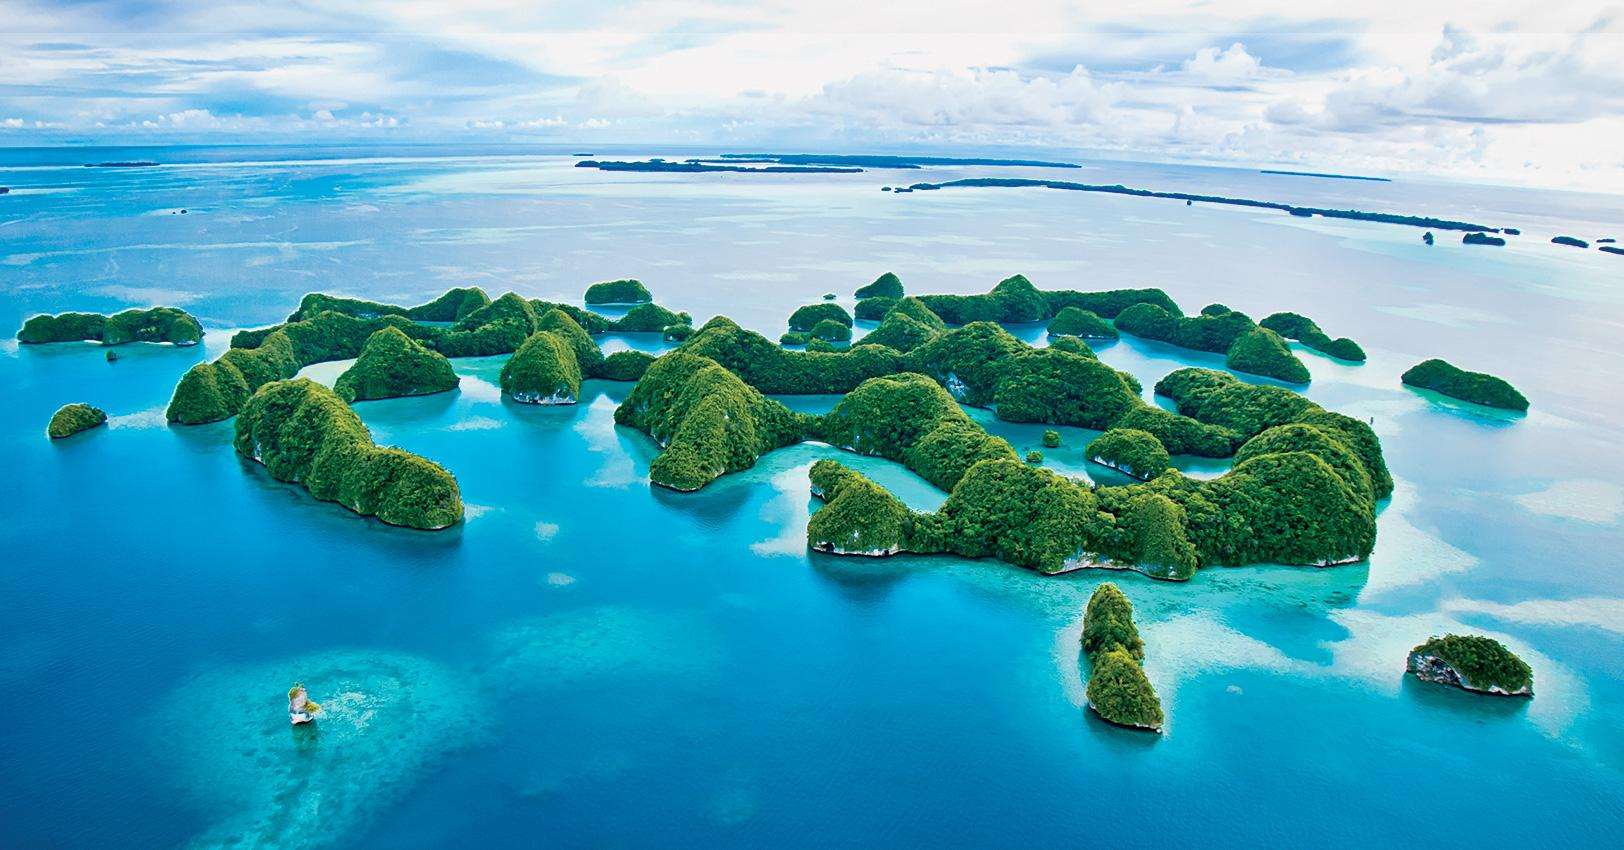 GM-Travel-SustainableTourismCountries-Palau-1525374404849.jpg